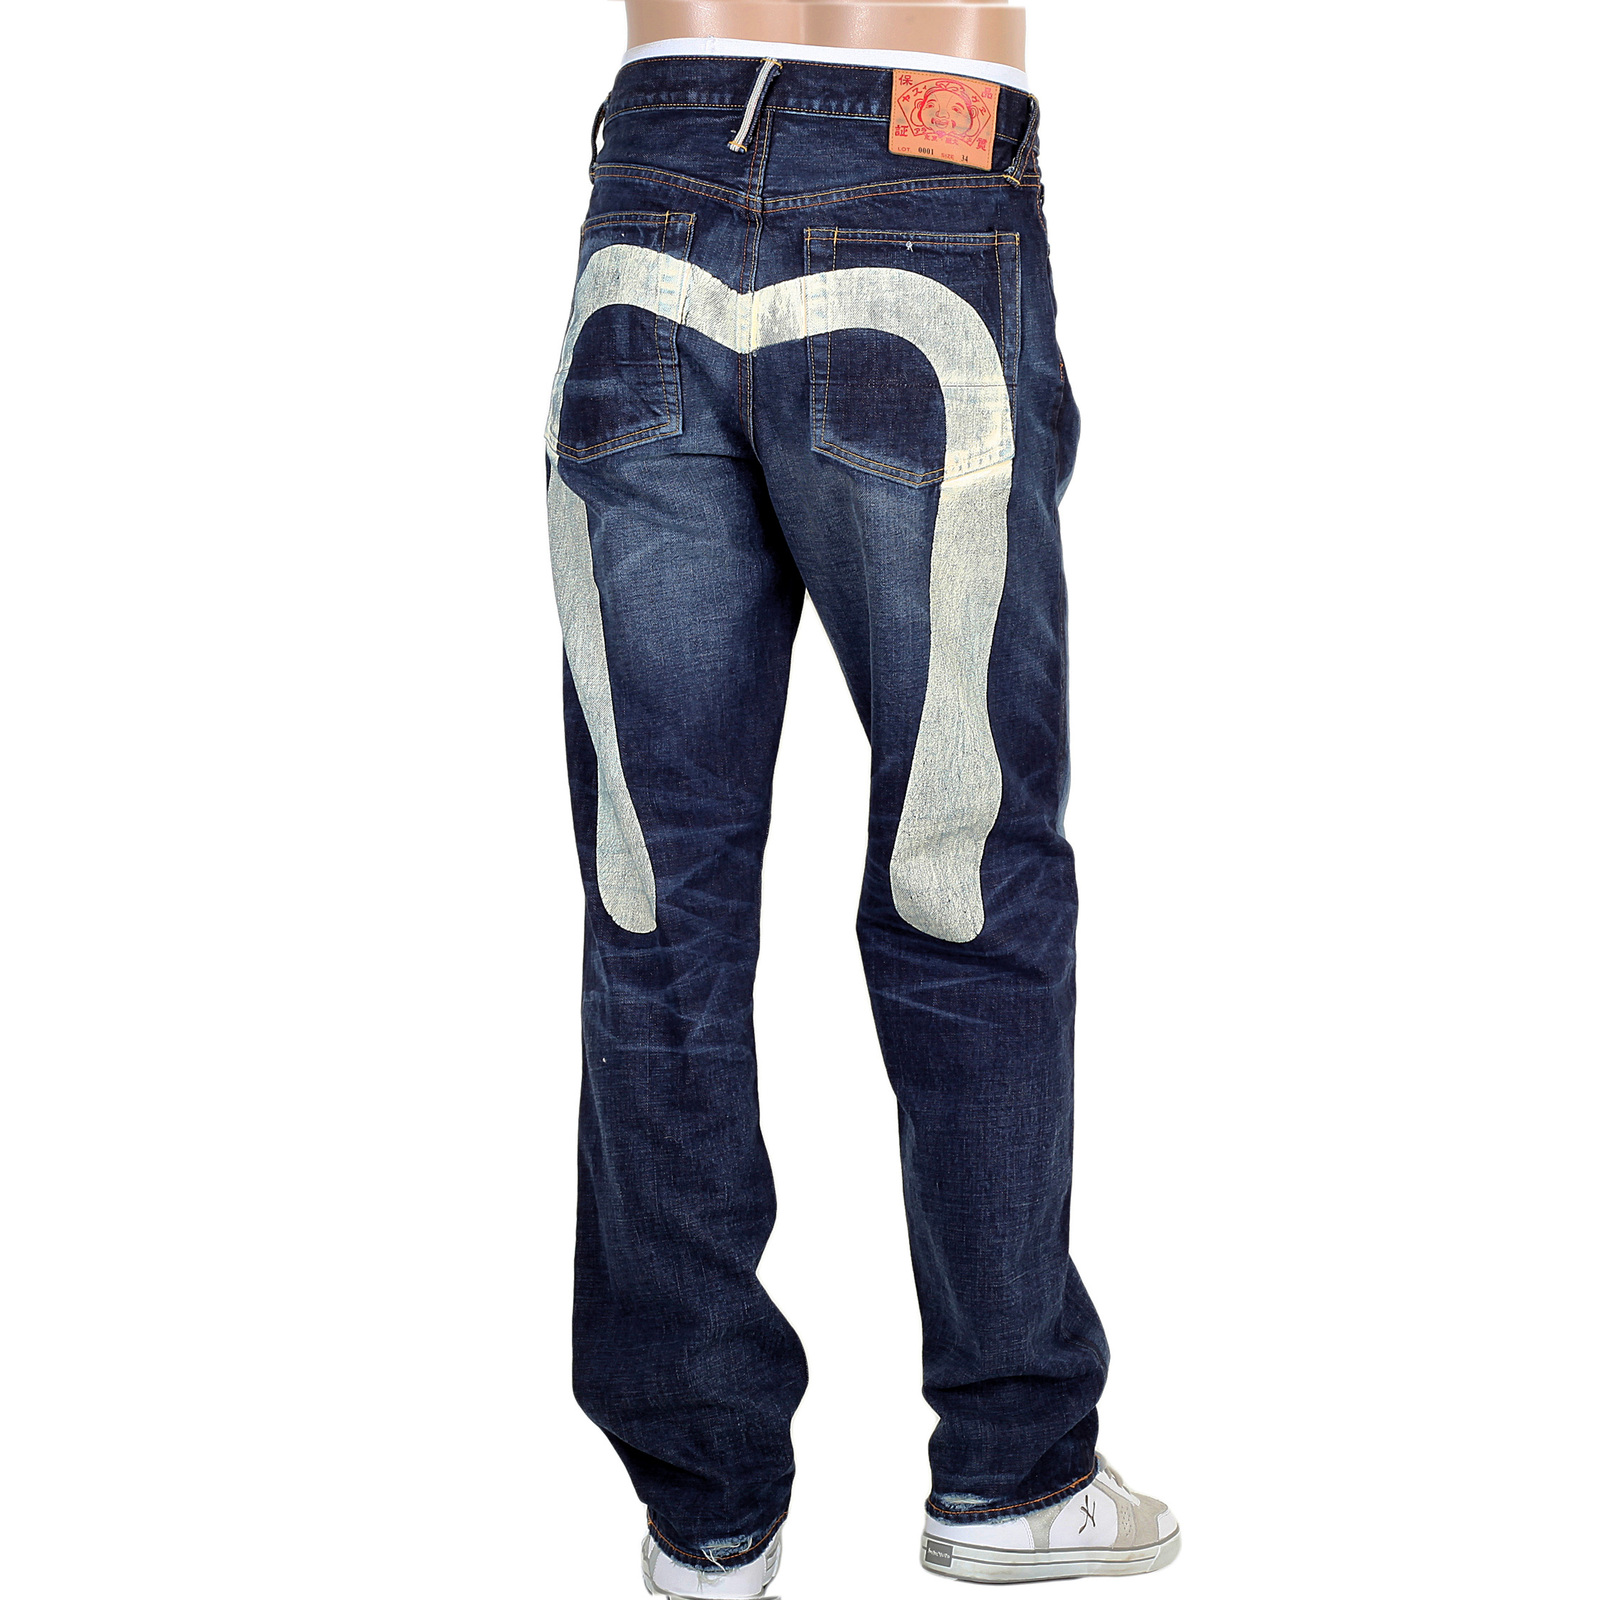 76c8a335d182 Japan Full Ecru Gull Jeans – White. Evisu Mens Stone Washed Vintage Cut  Selvedge Denim Jeans with Large Ecru Painted Diacock on Back